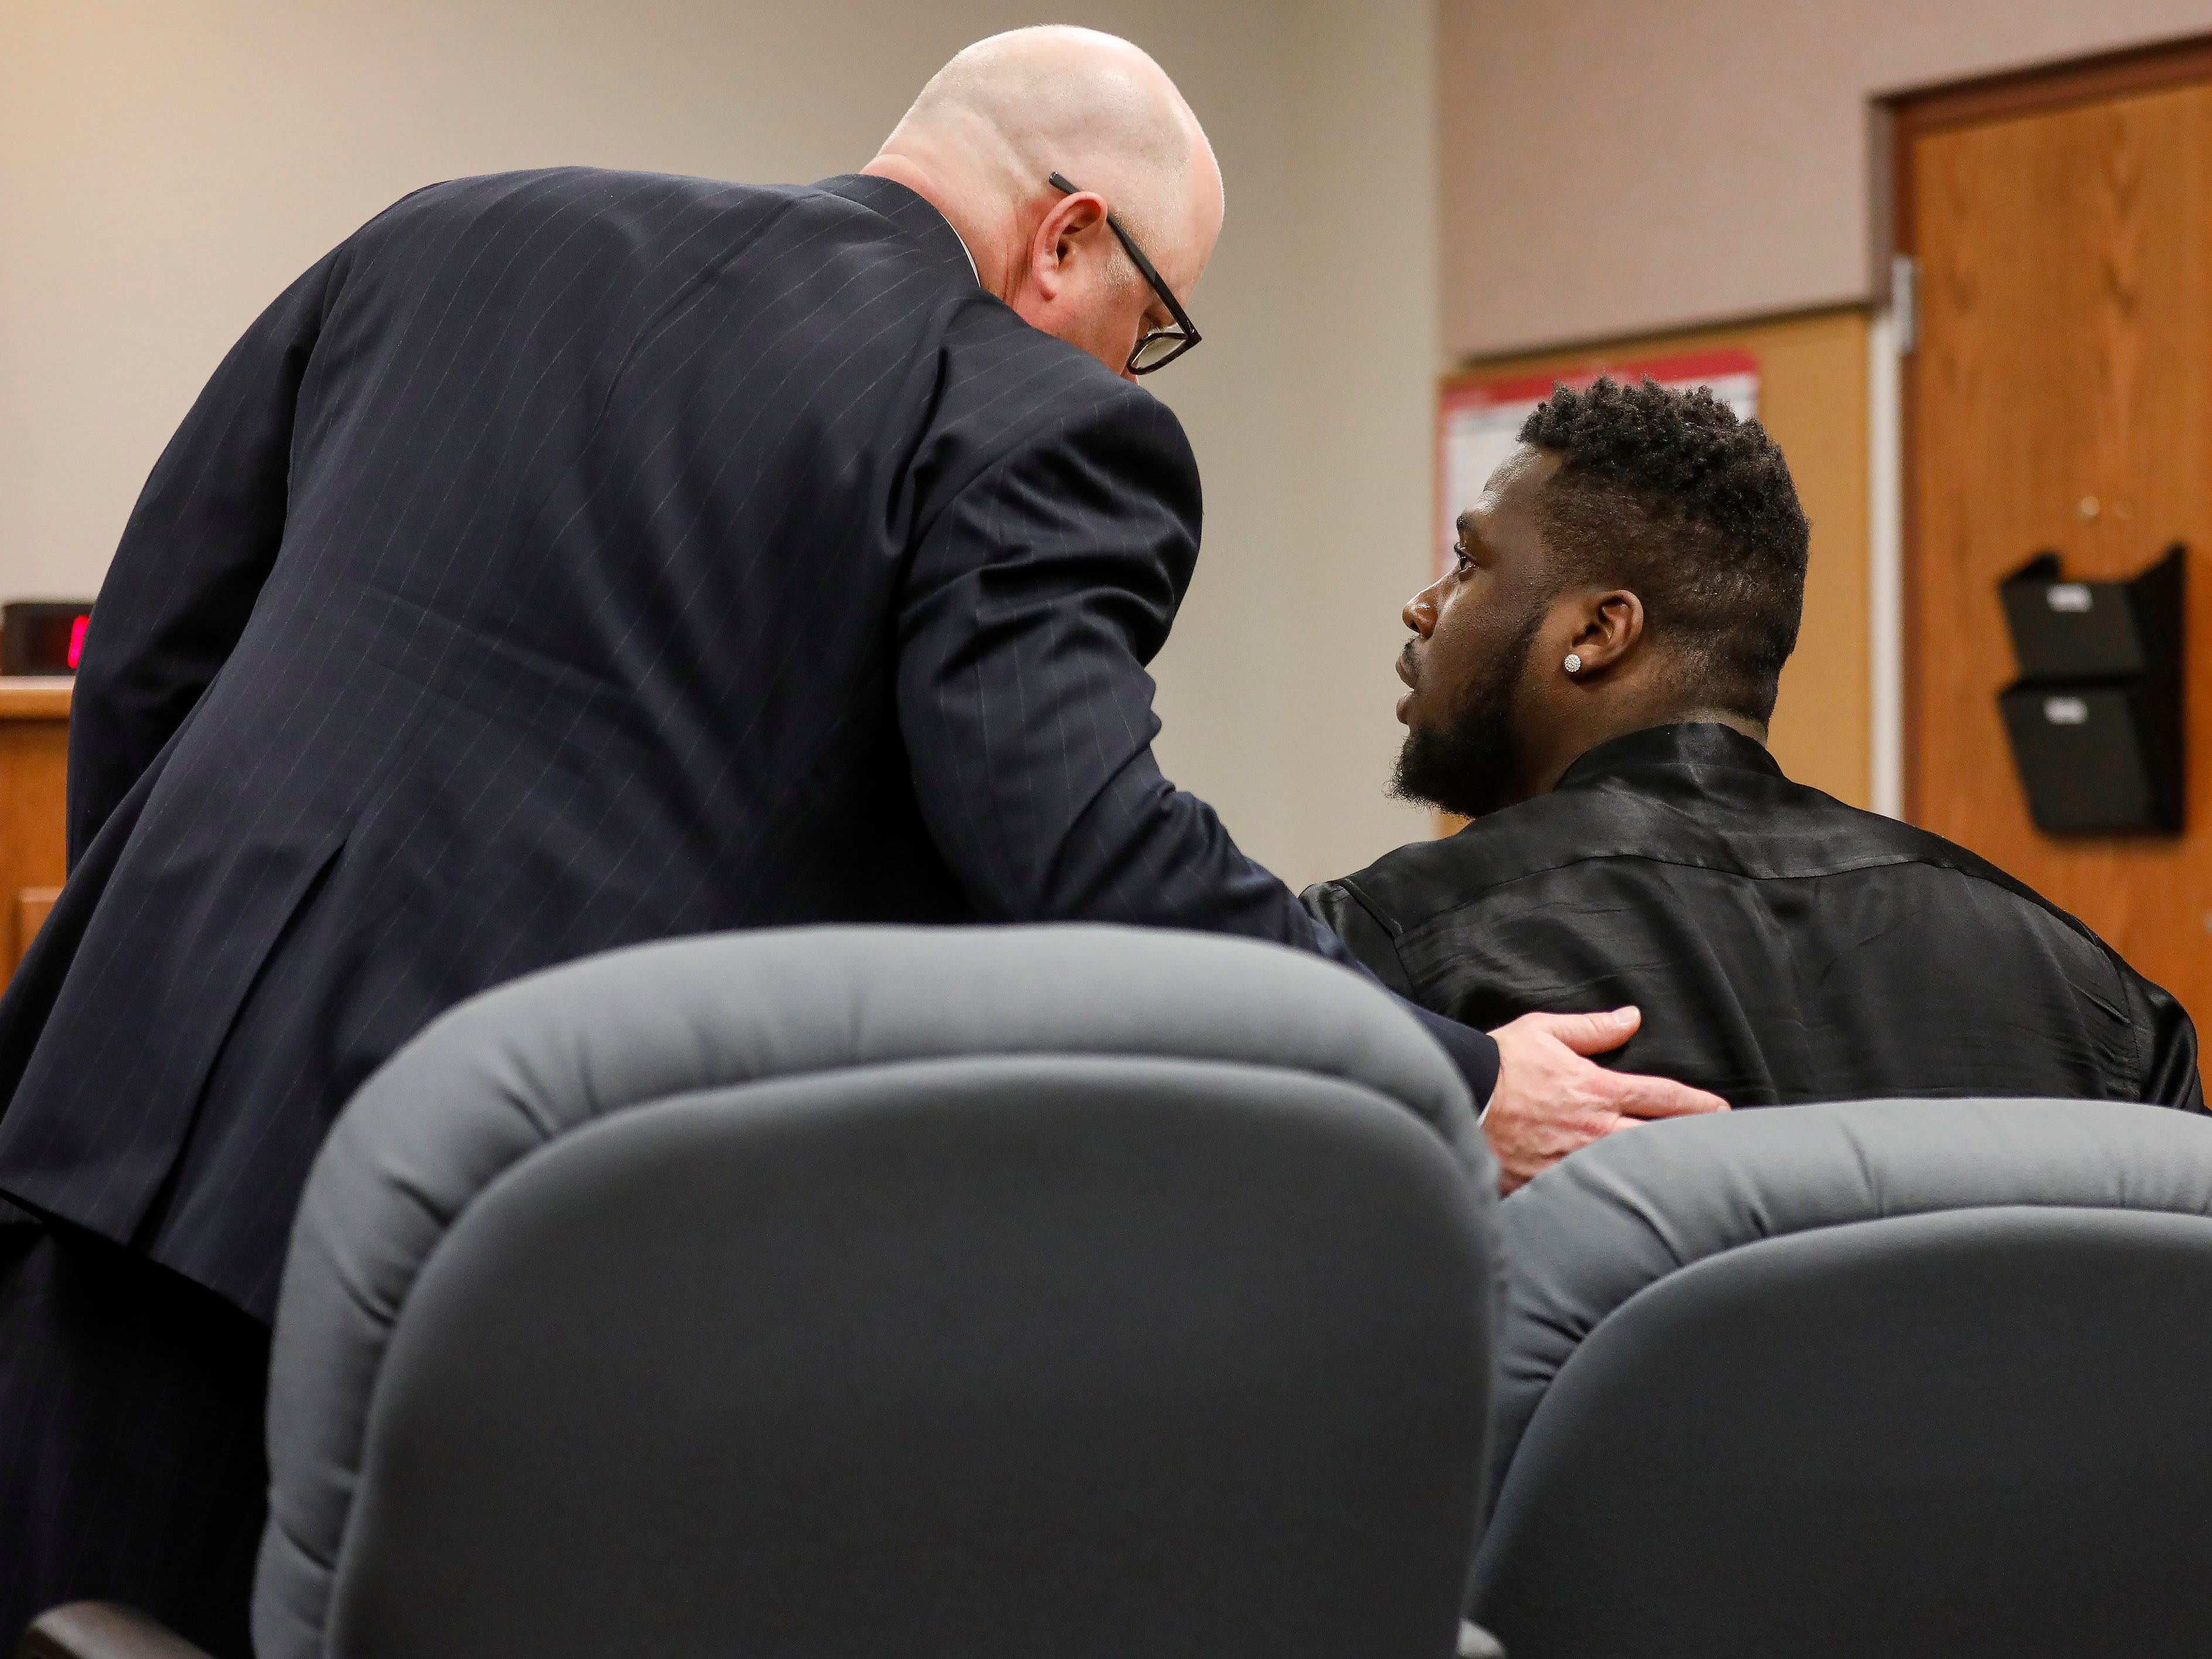 Dorial Green-Beckham's lawyer Tyson Martin, left, speaks to him after he was sentenced to 90 days in jail for probation violation in a prior DWI case on Friday, March 8, 2019.